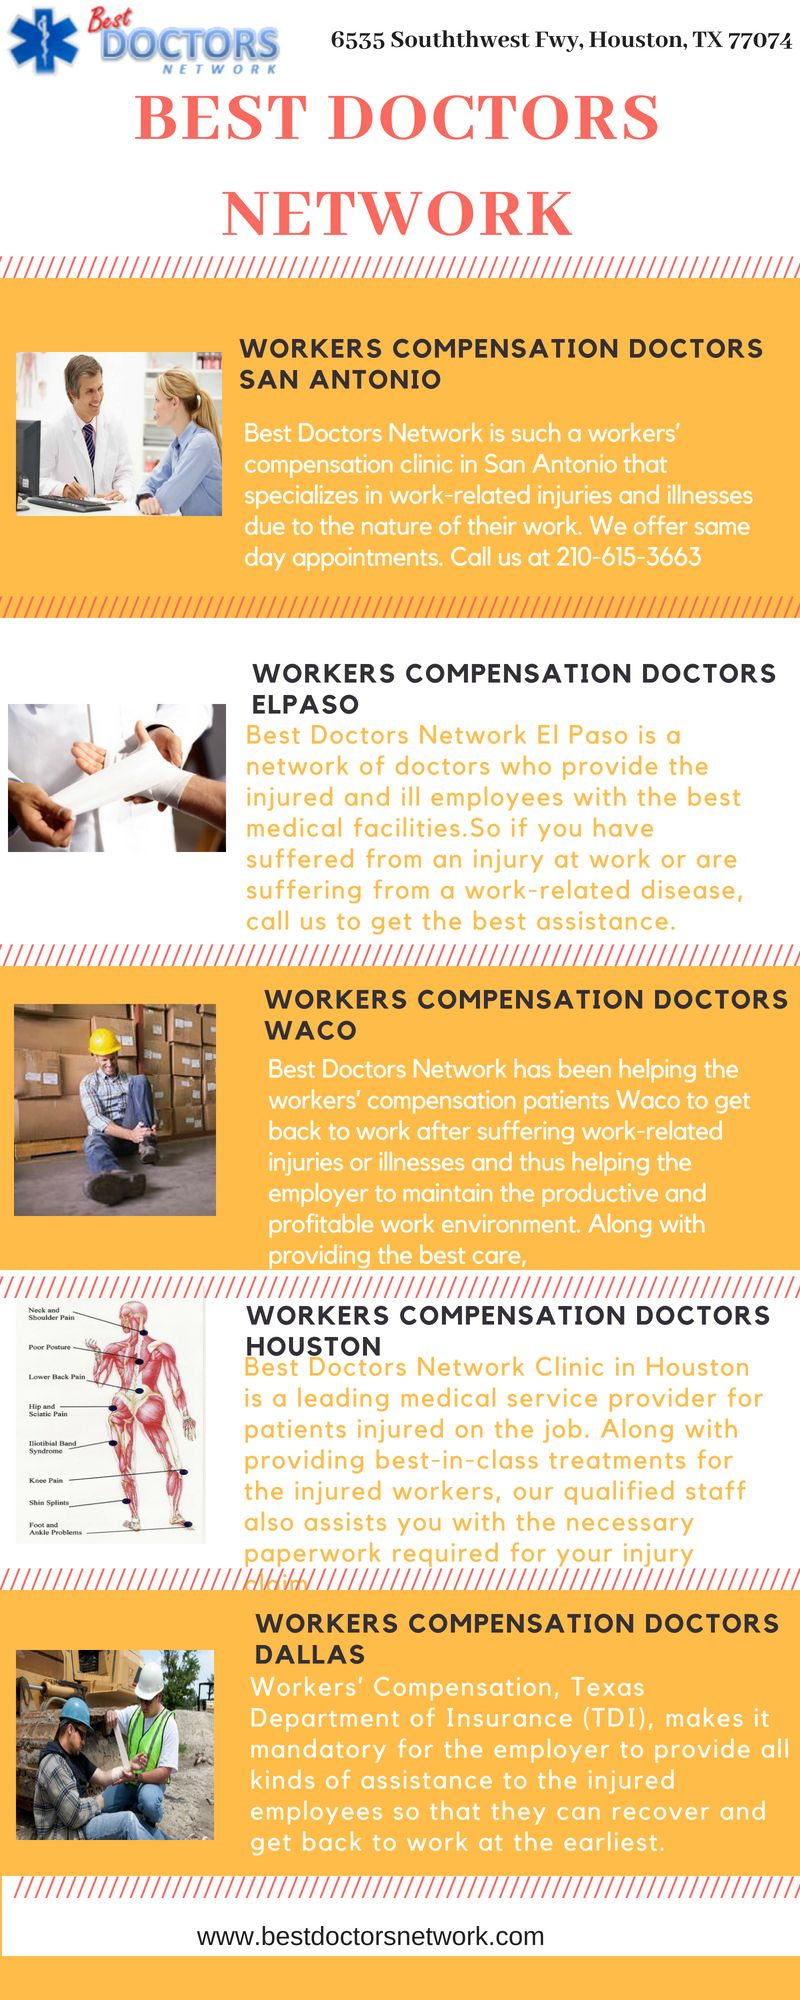 Workers Compensation Doctors Dallas Texas Best Doctors Work